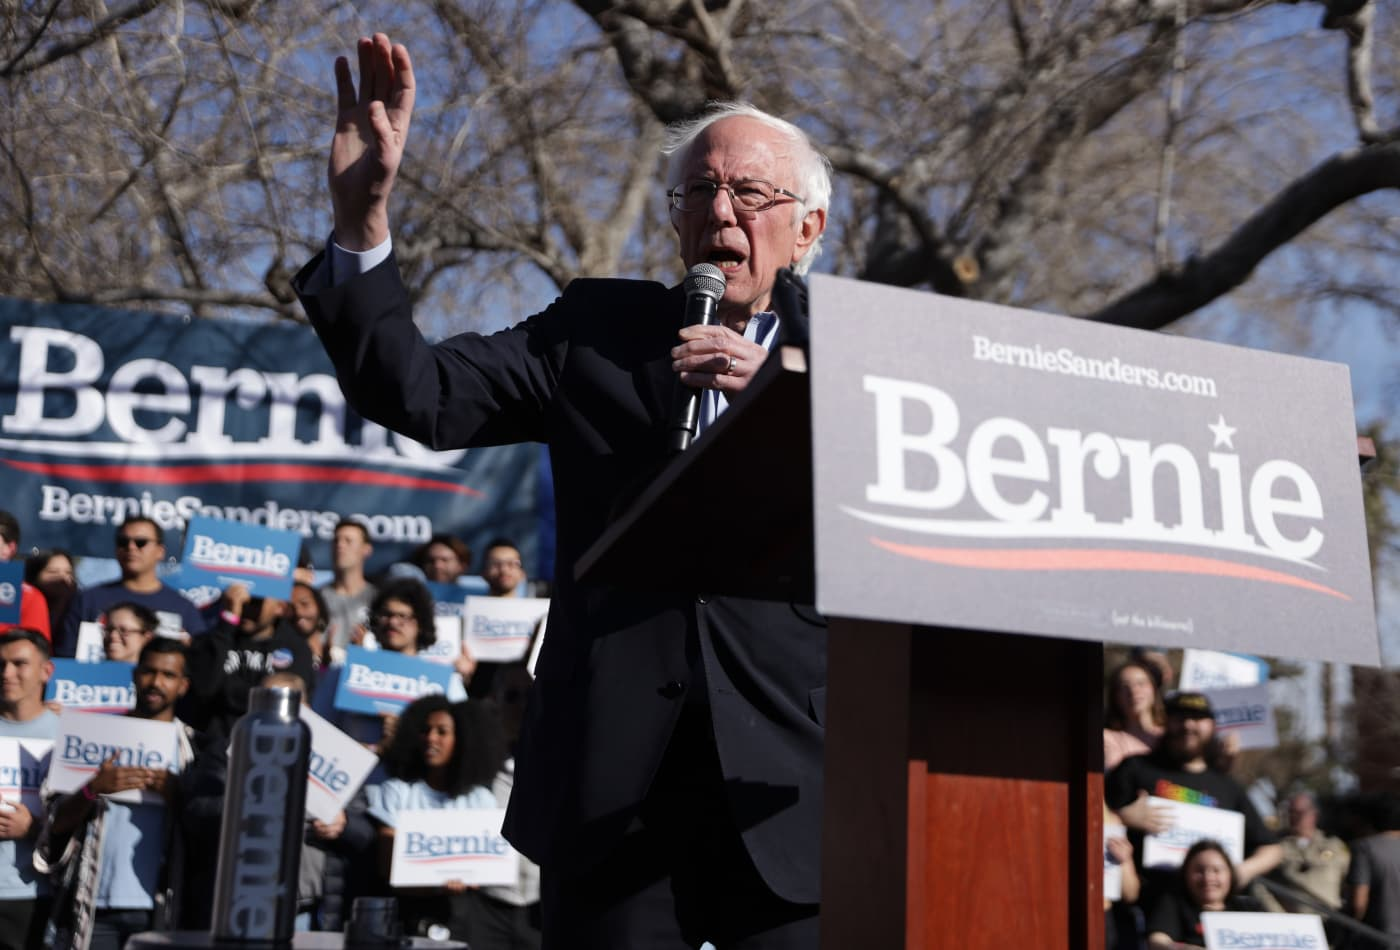 Sanders' new tax policy raises alarms in Silicon Valley